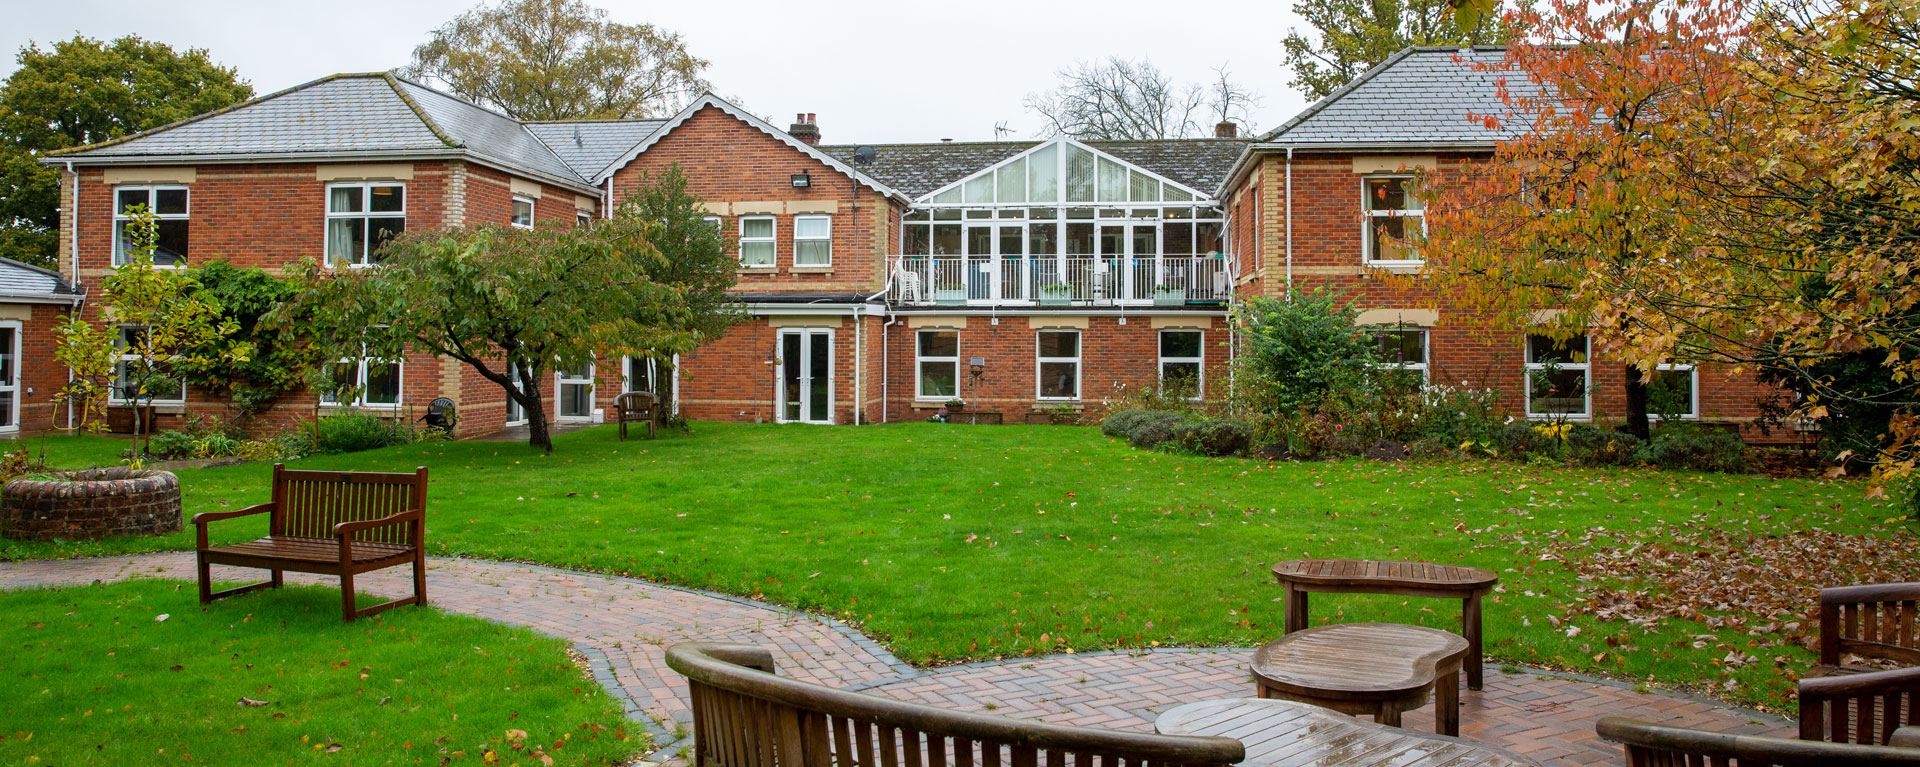 Back view of the care home and gardens with autumn leaves everywhere